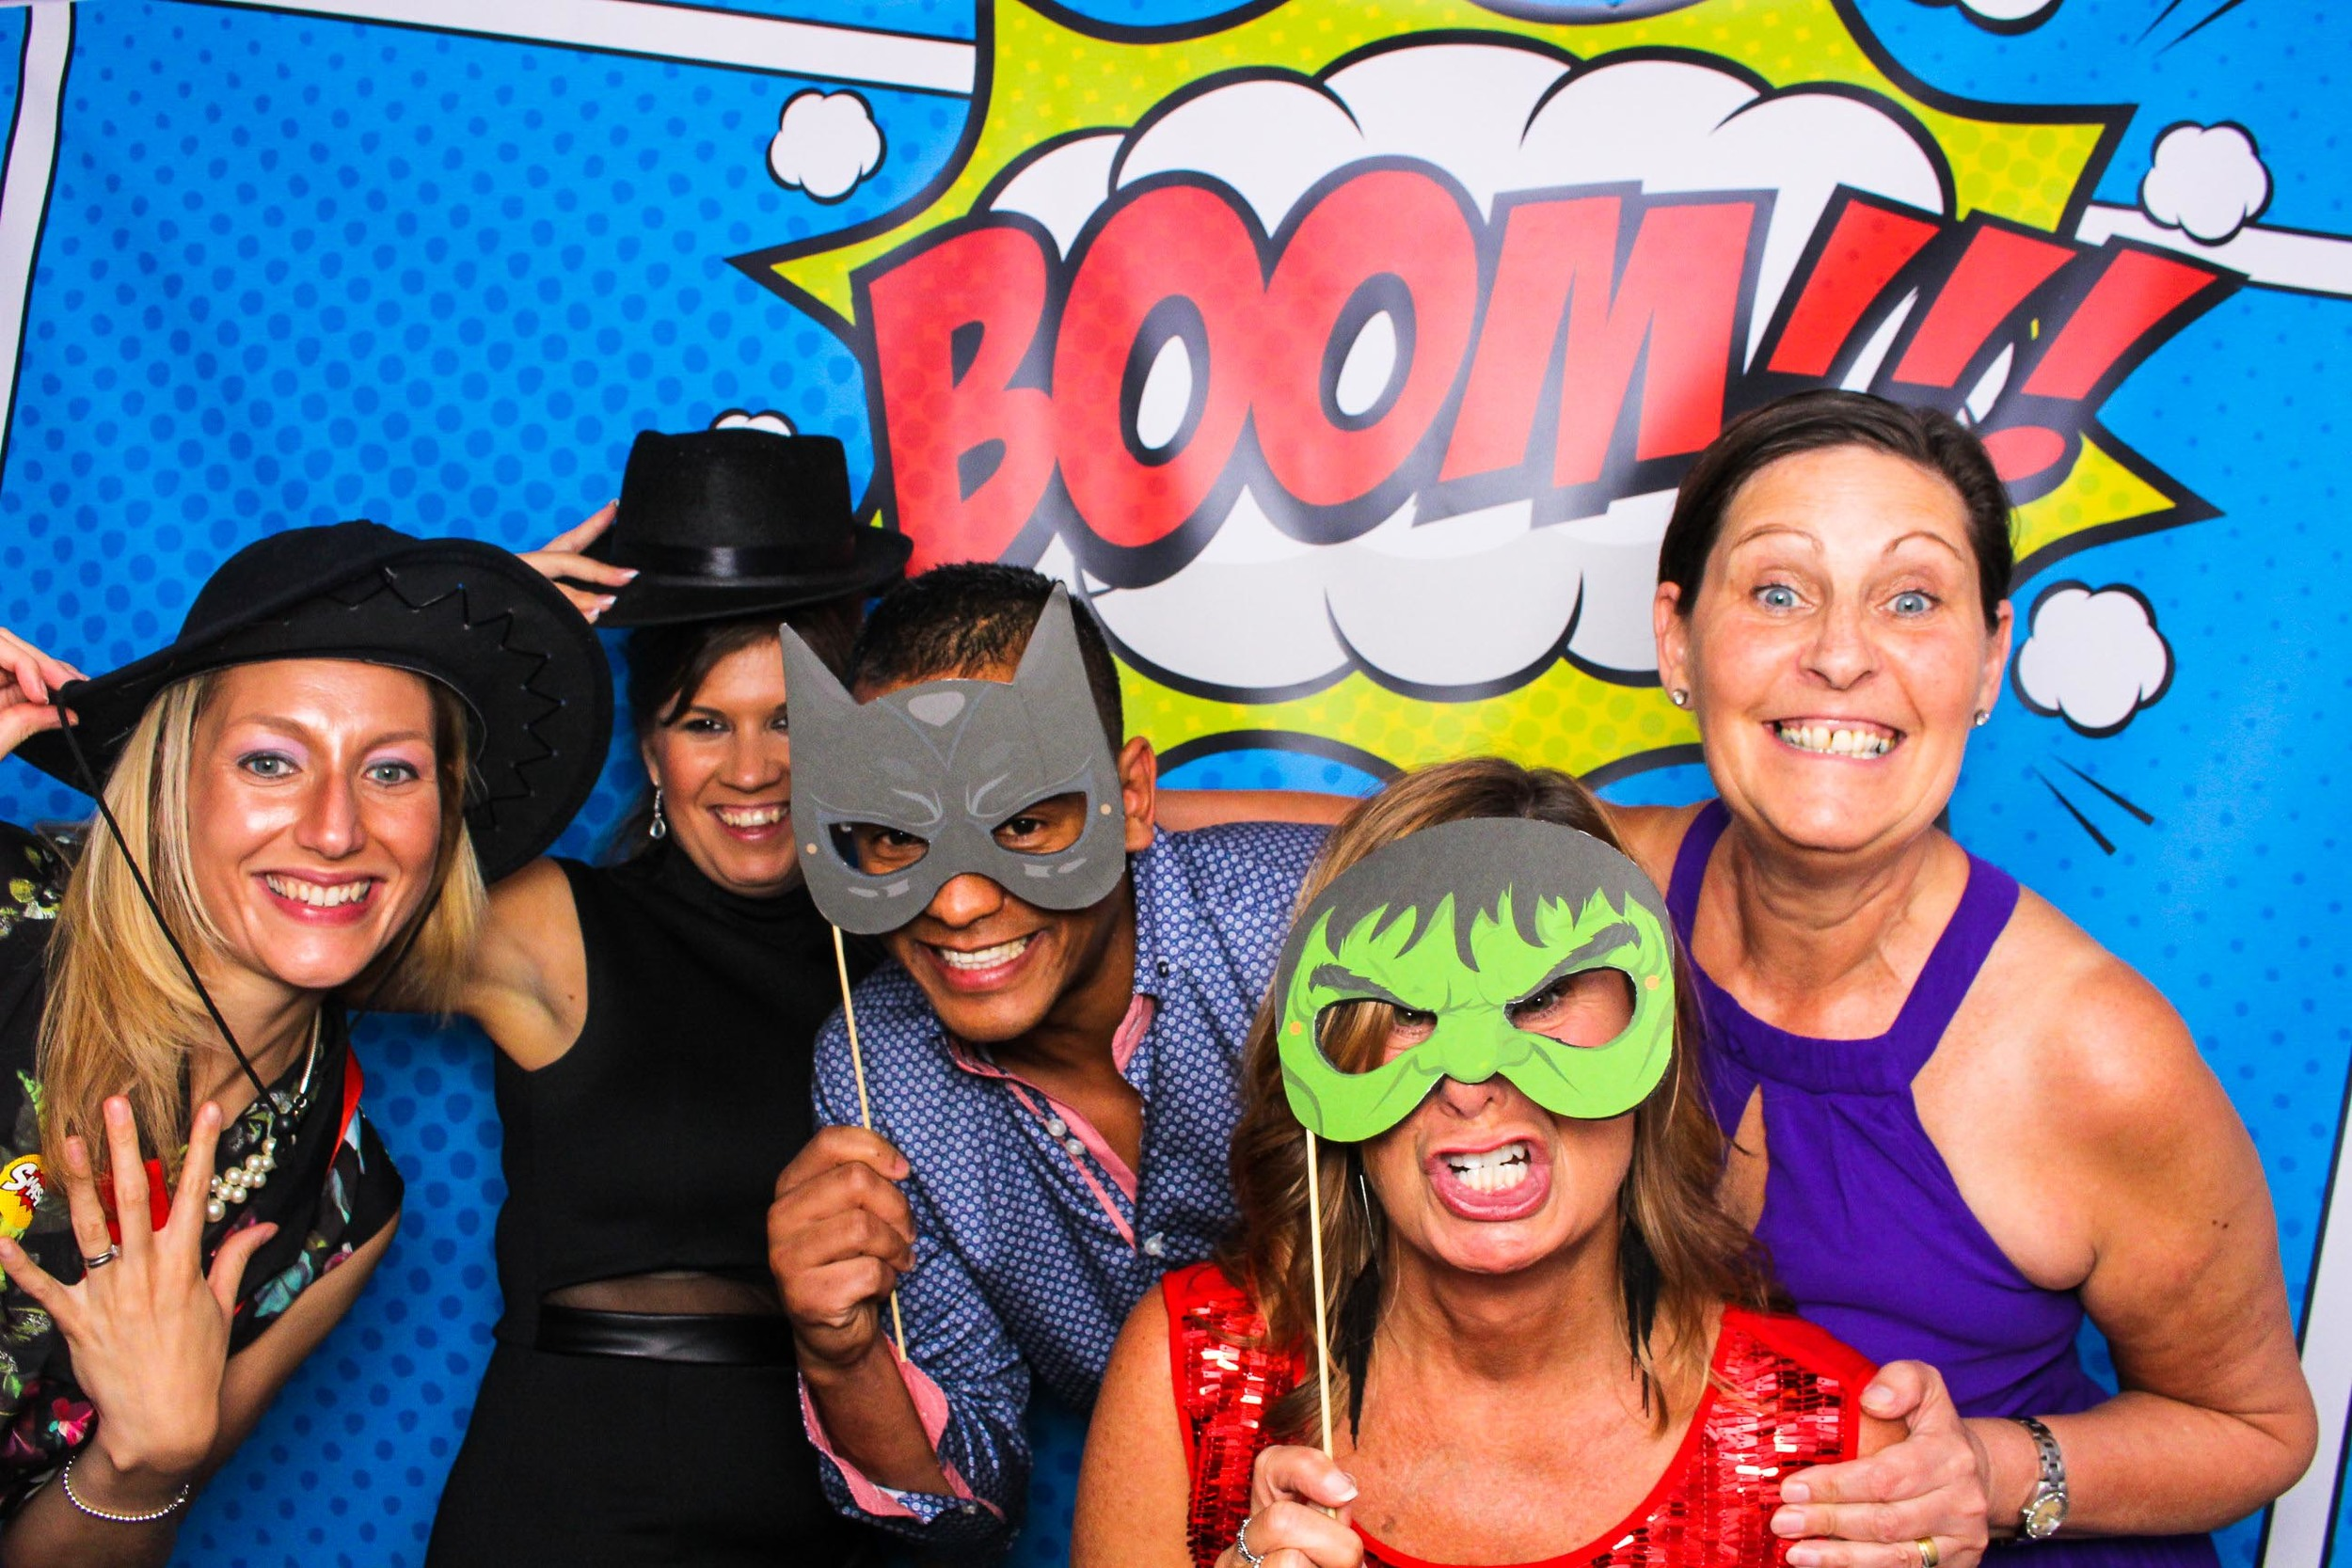 Fotoauto Photo Booth Hire - Shop Direct-242.jpg